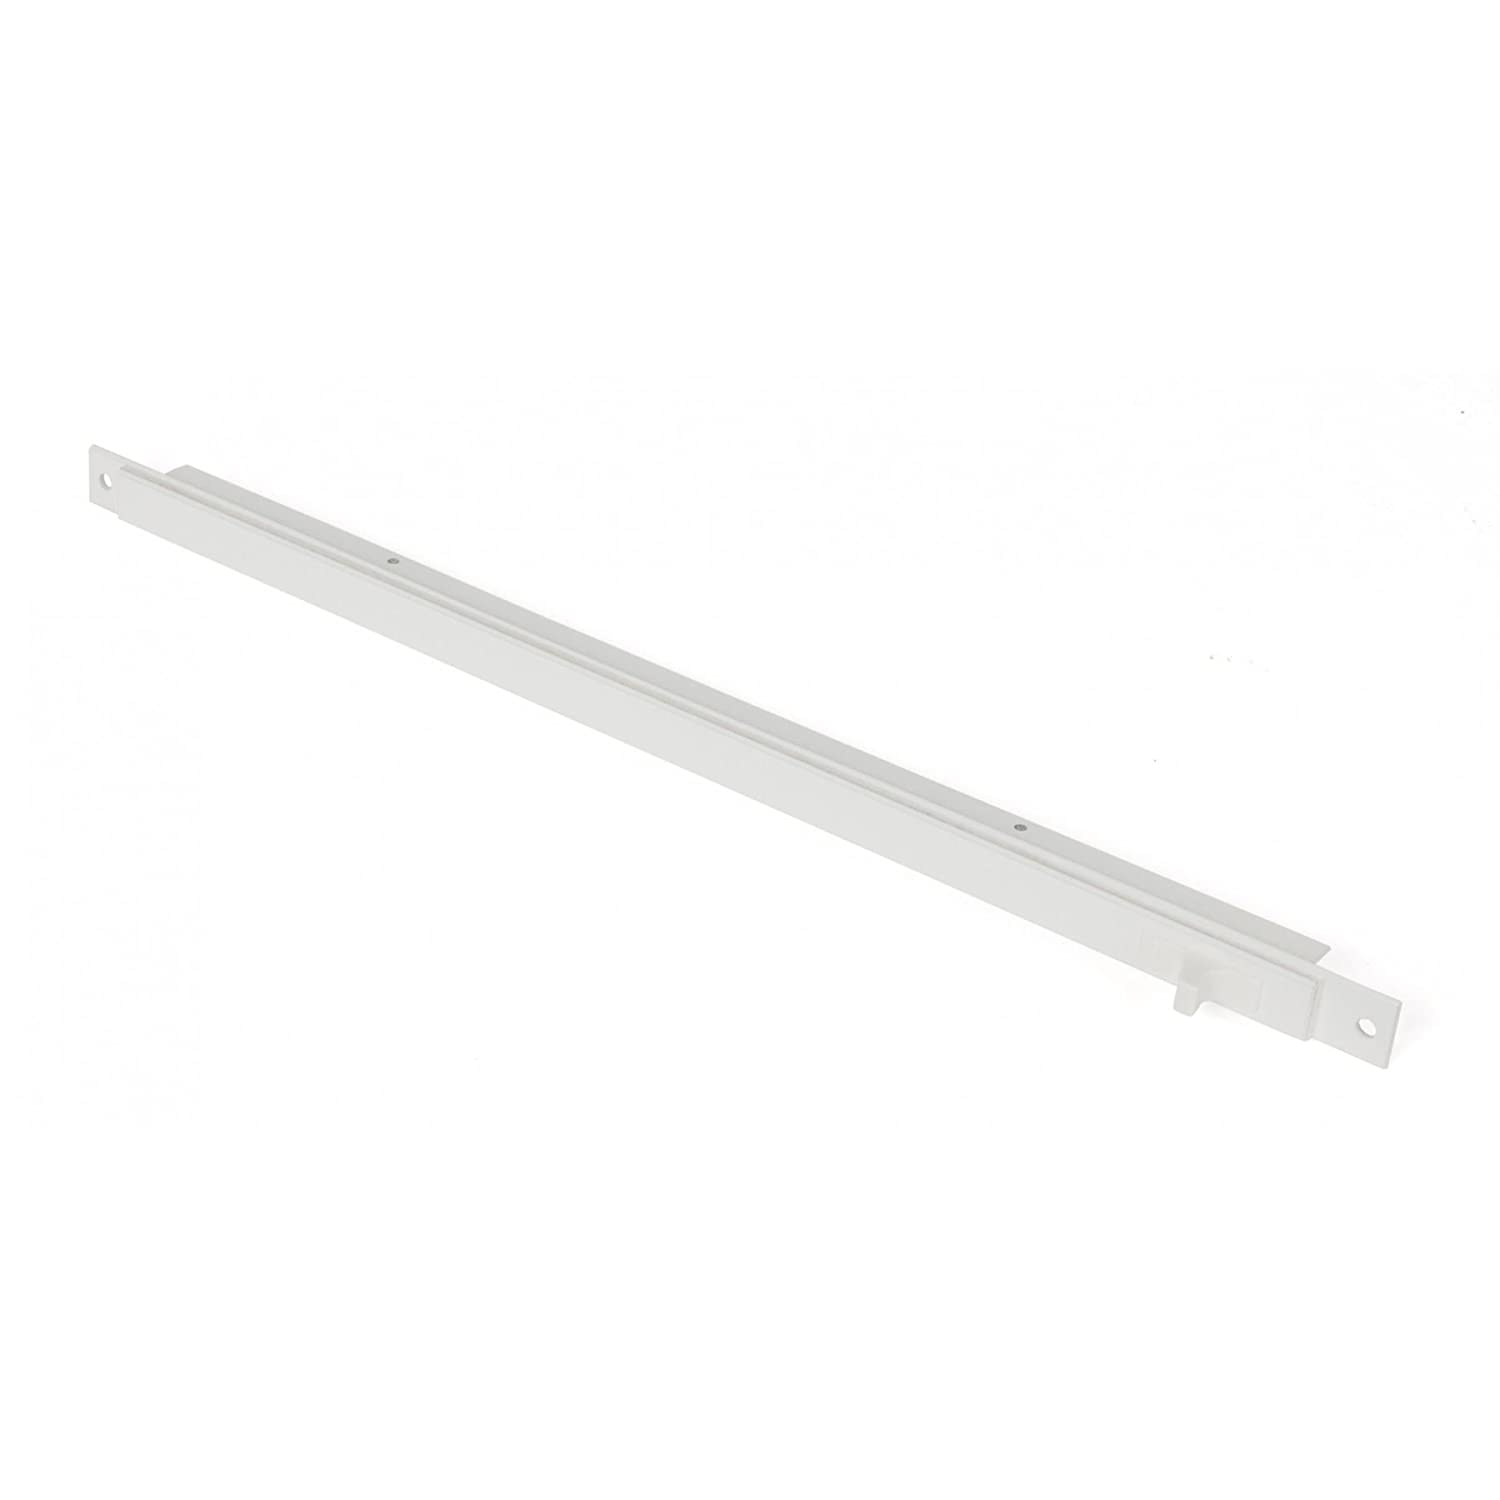 Large Aluminium Trickle Vent 380mm - White Black Country Metal Work